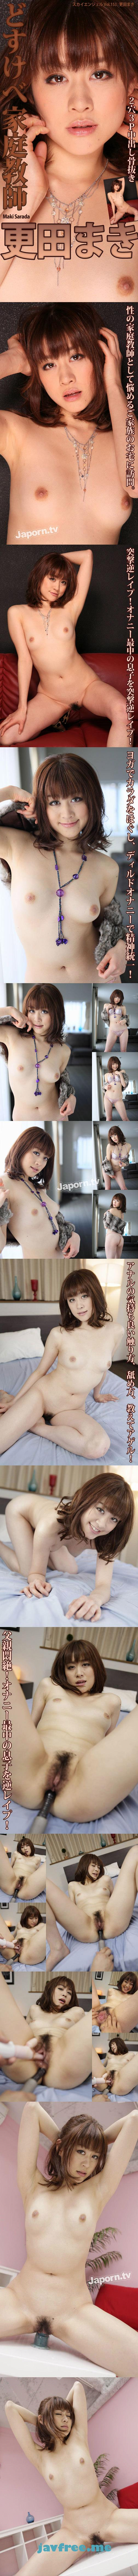 [SKY-257] スカイエンジェル Vol.153 : 更田まき - image SKY-257a on https://javfree.me